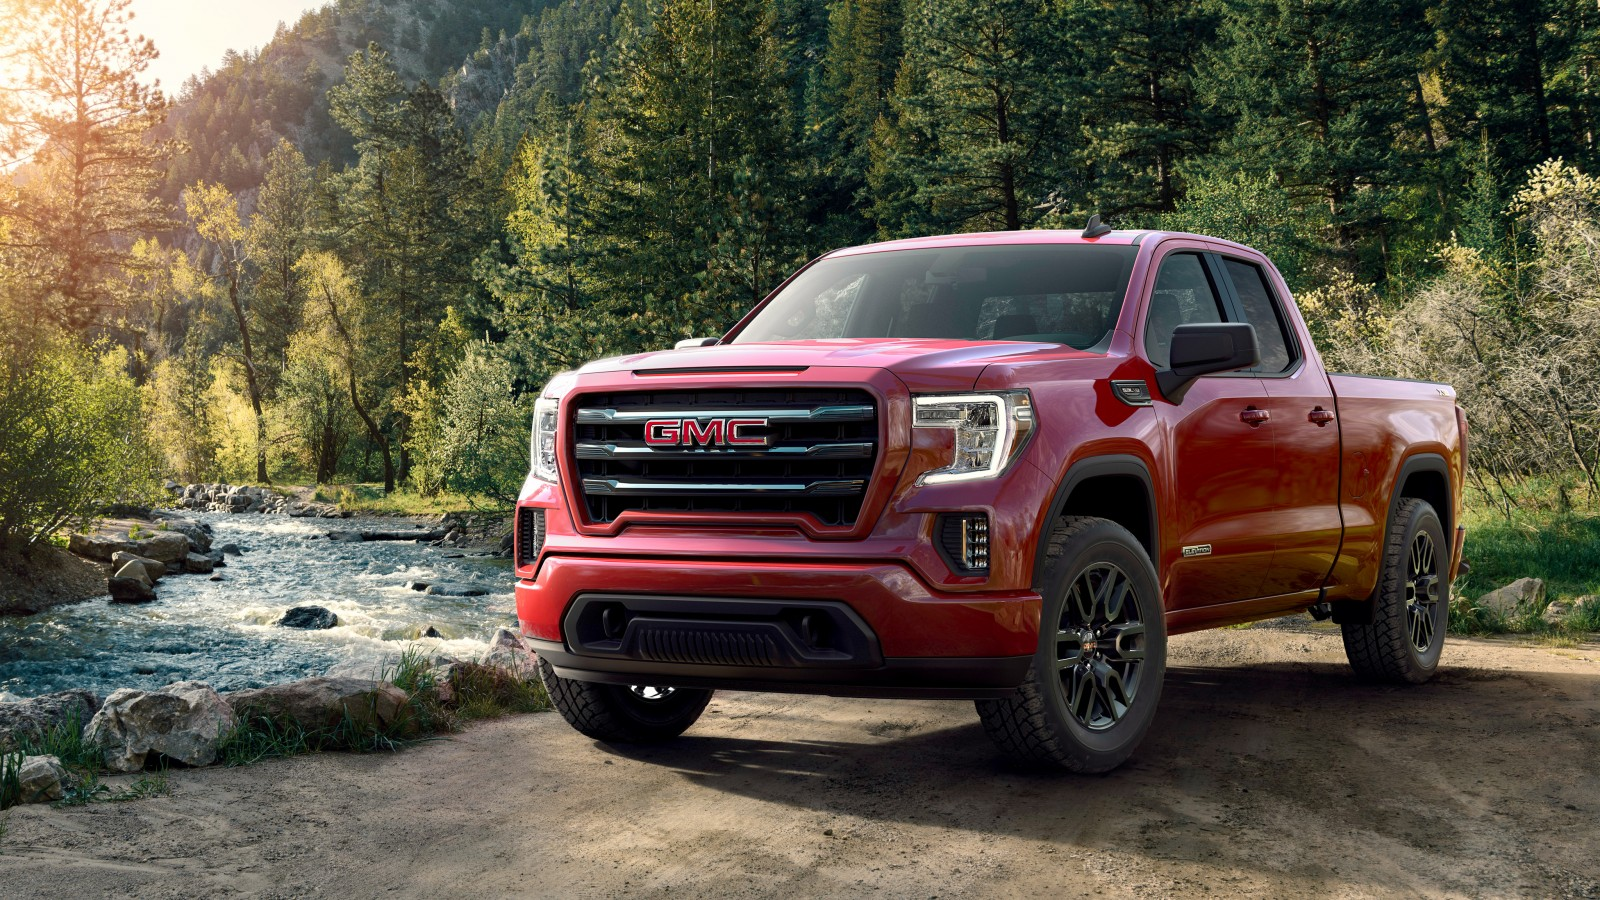 2019 Gmc Sierra Elevation Doule Cab 4k Wallpaper Hd Car